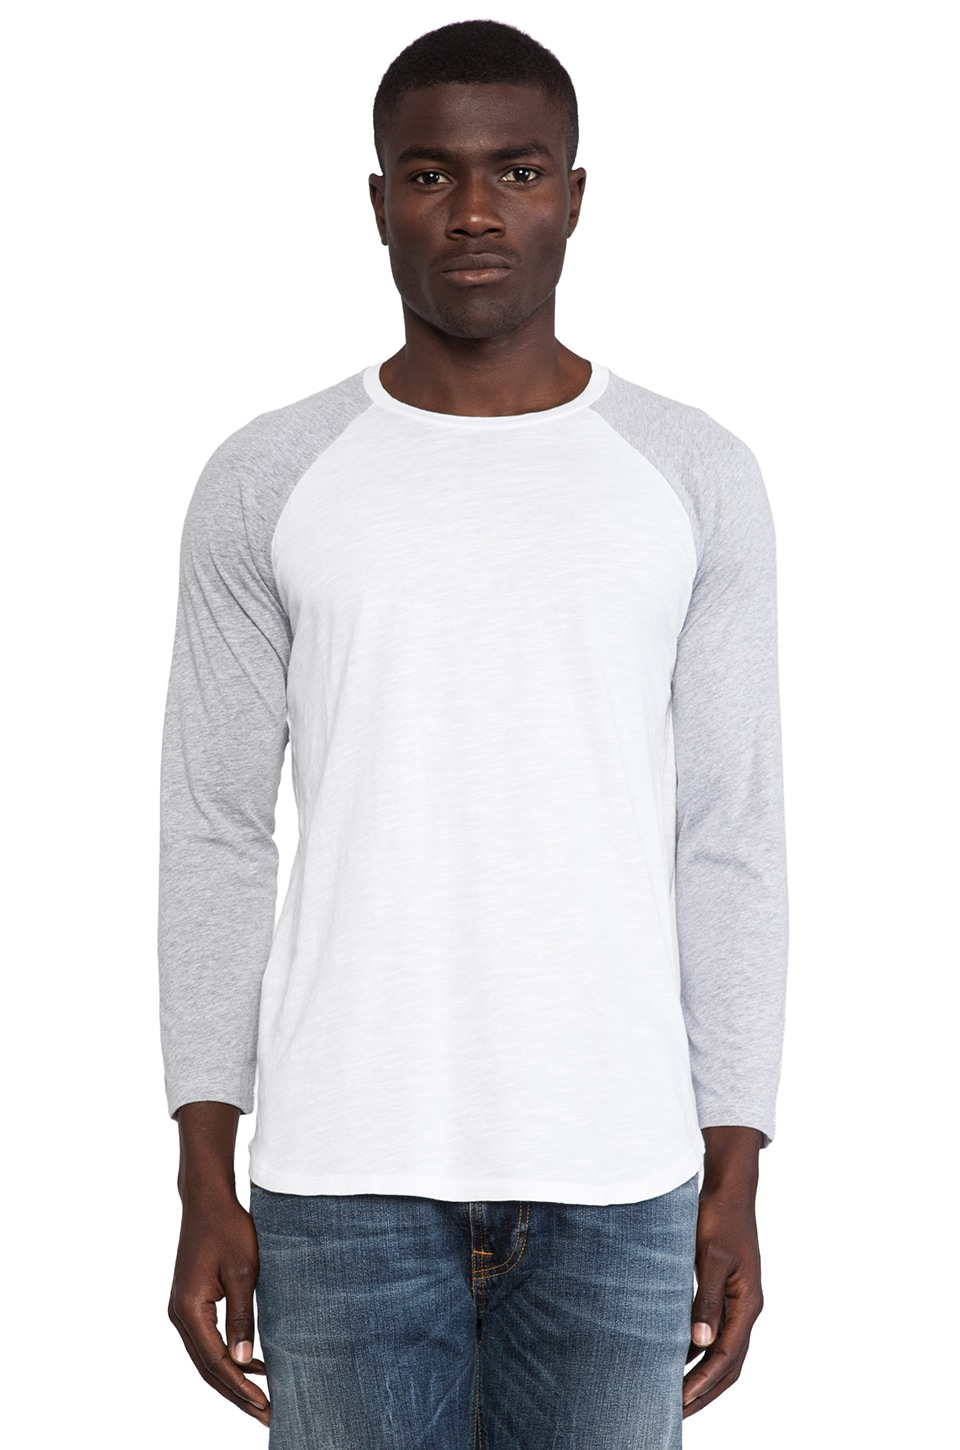 Velvet by Graham & Spencer Kent Tee in White